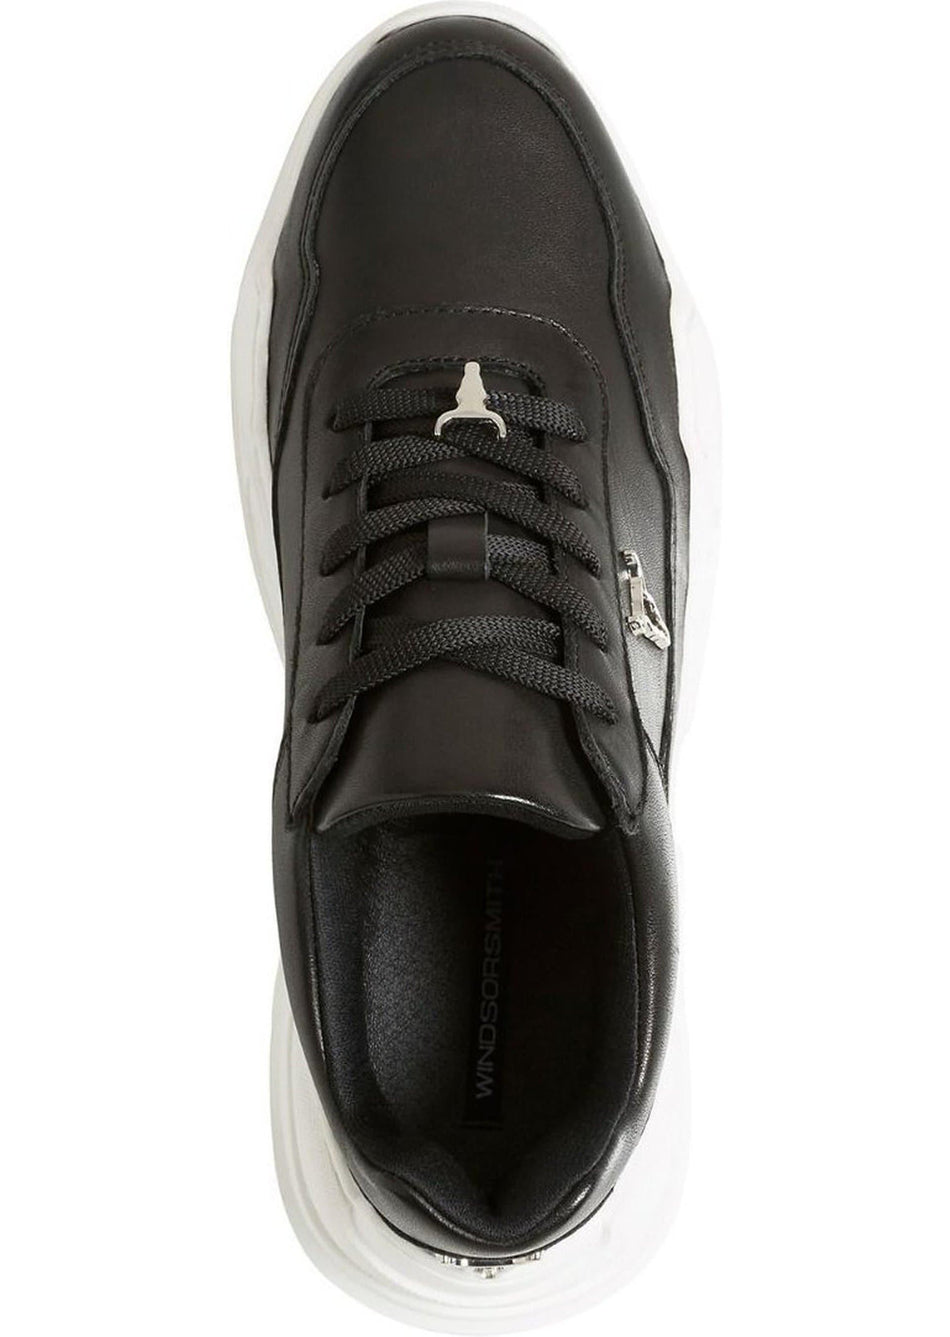 windsor smith sneakers carte WINDSORSMITH - Vittorio Citro Boutique